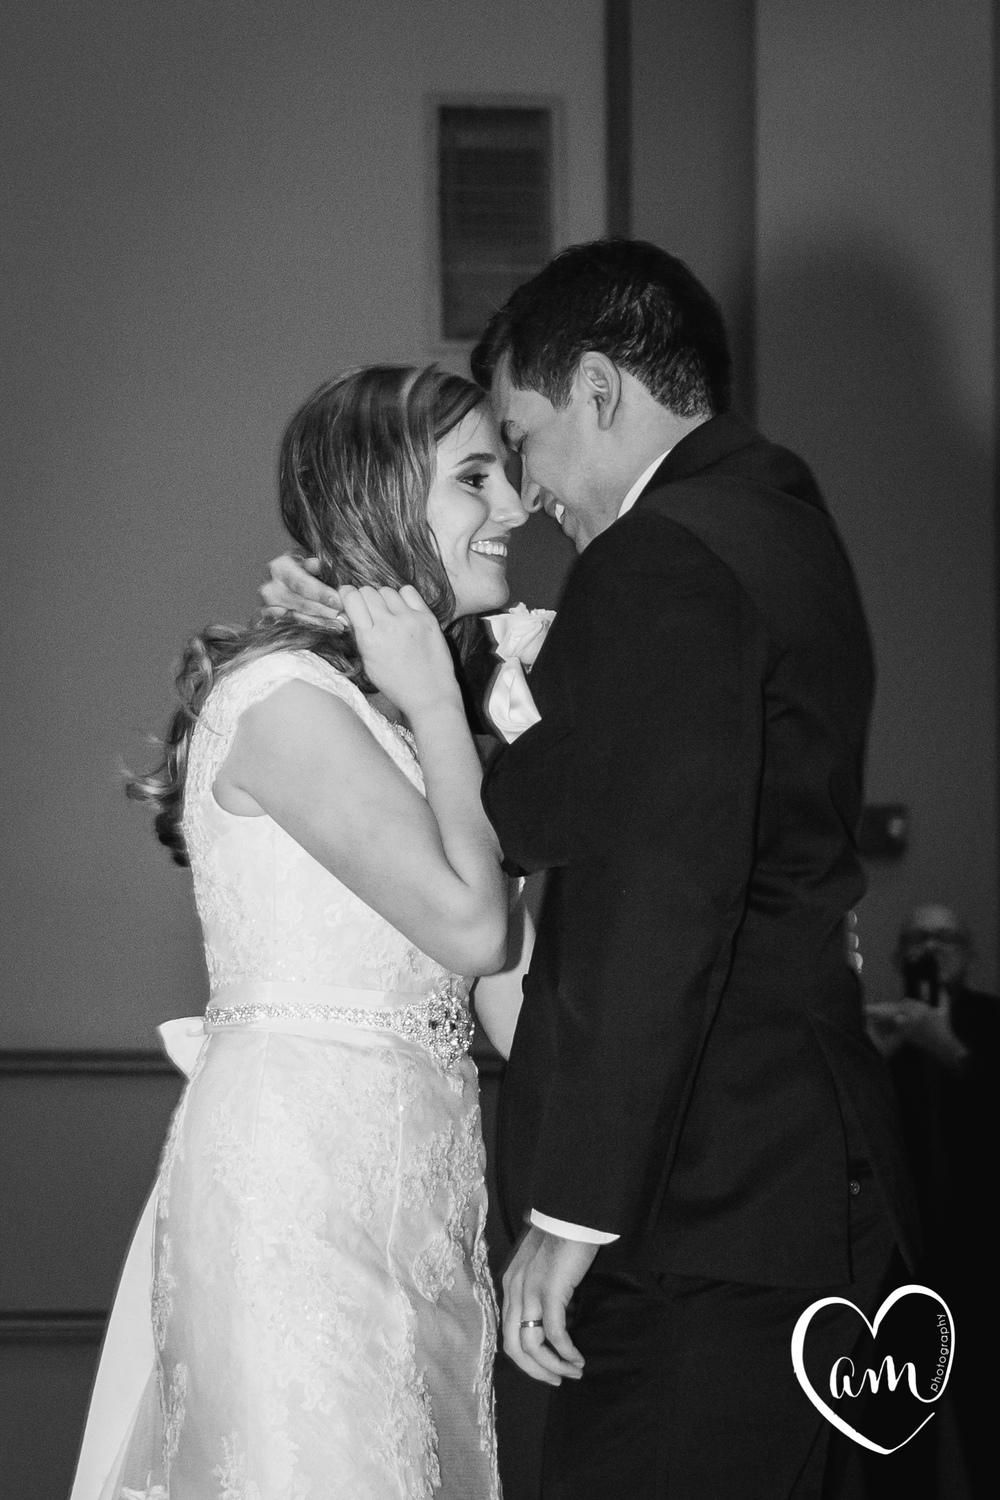 Bride and Groom first dance at Kissimmee Wedding. Photo by Amanda Mejias Photography